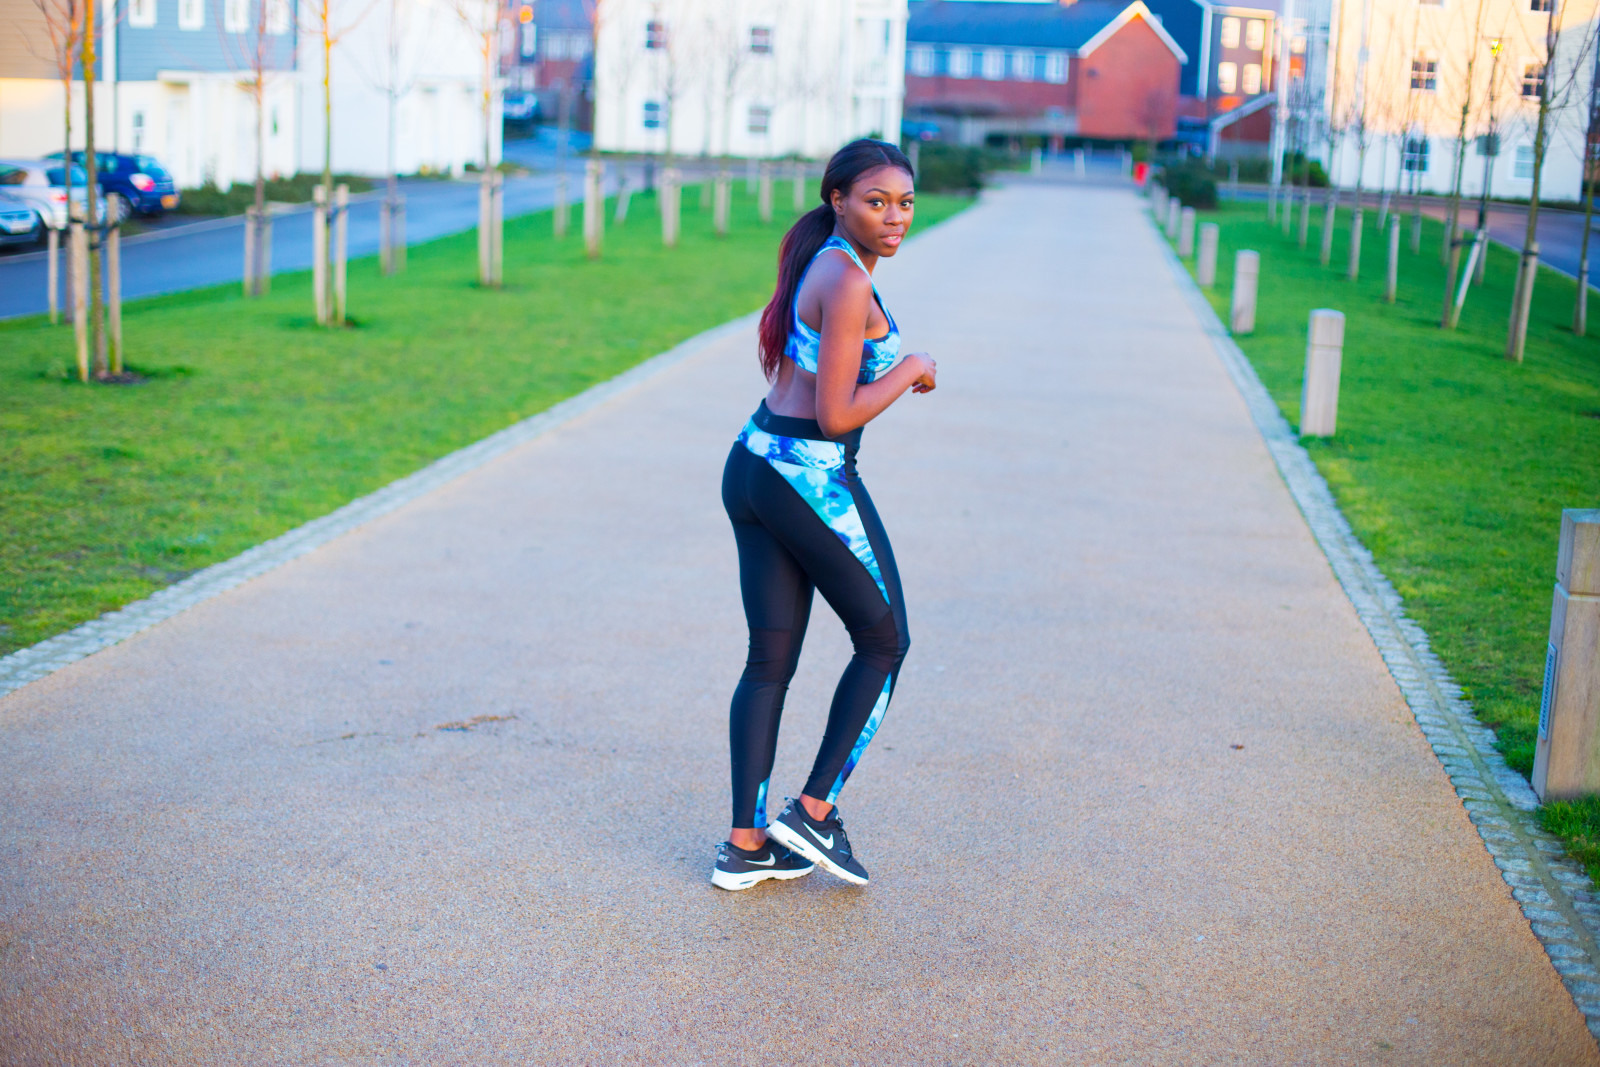 THE START OF A JOURNEY| BODY, HEALTH & FITNESS WHILE LOOKING GOOD